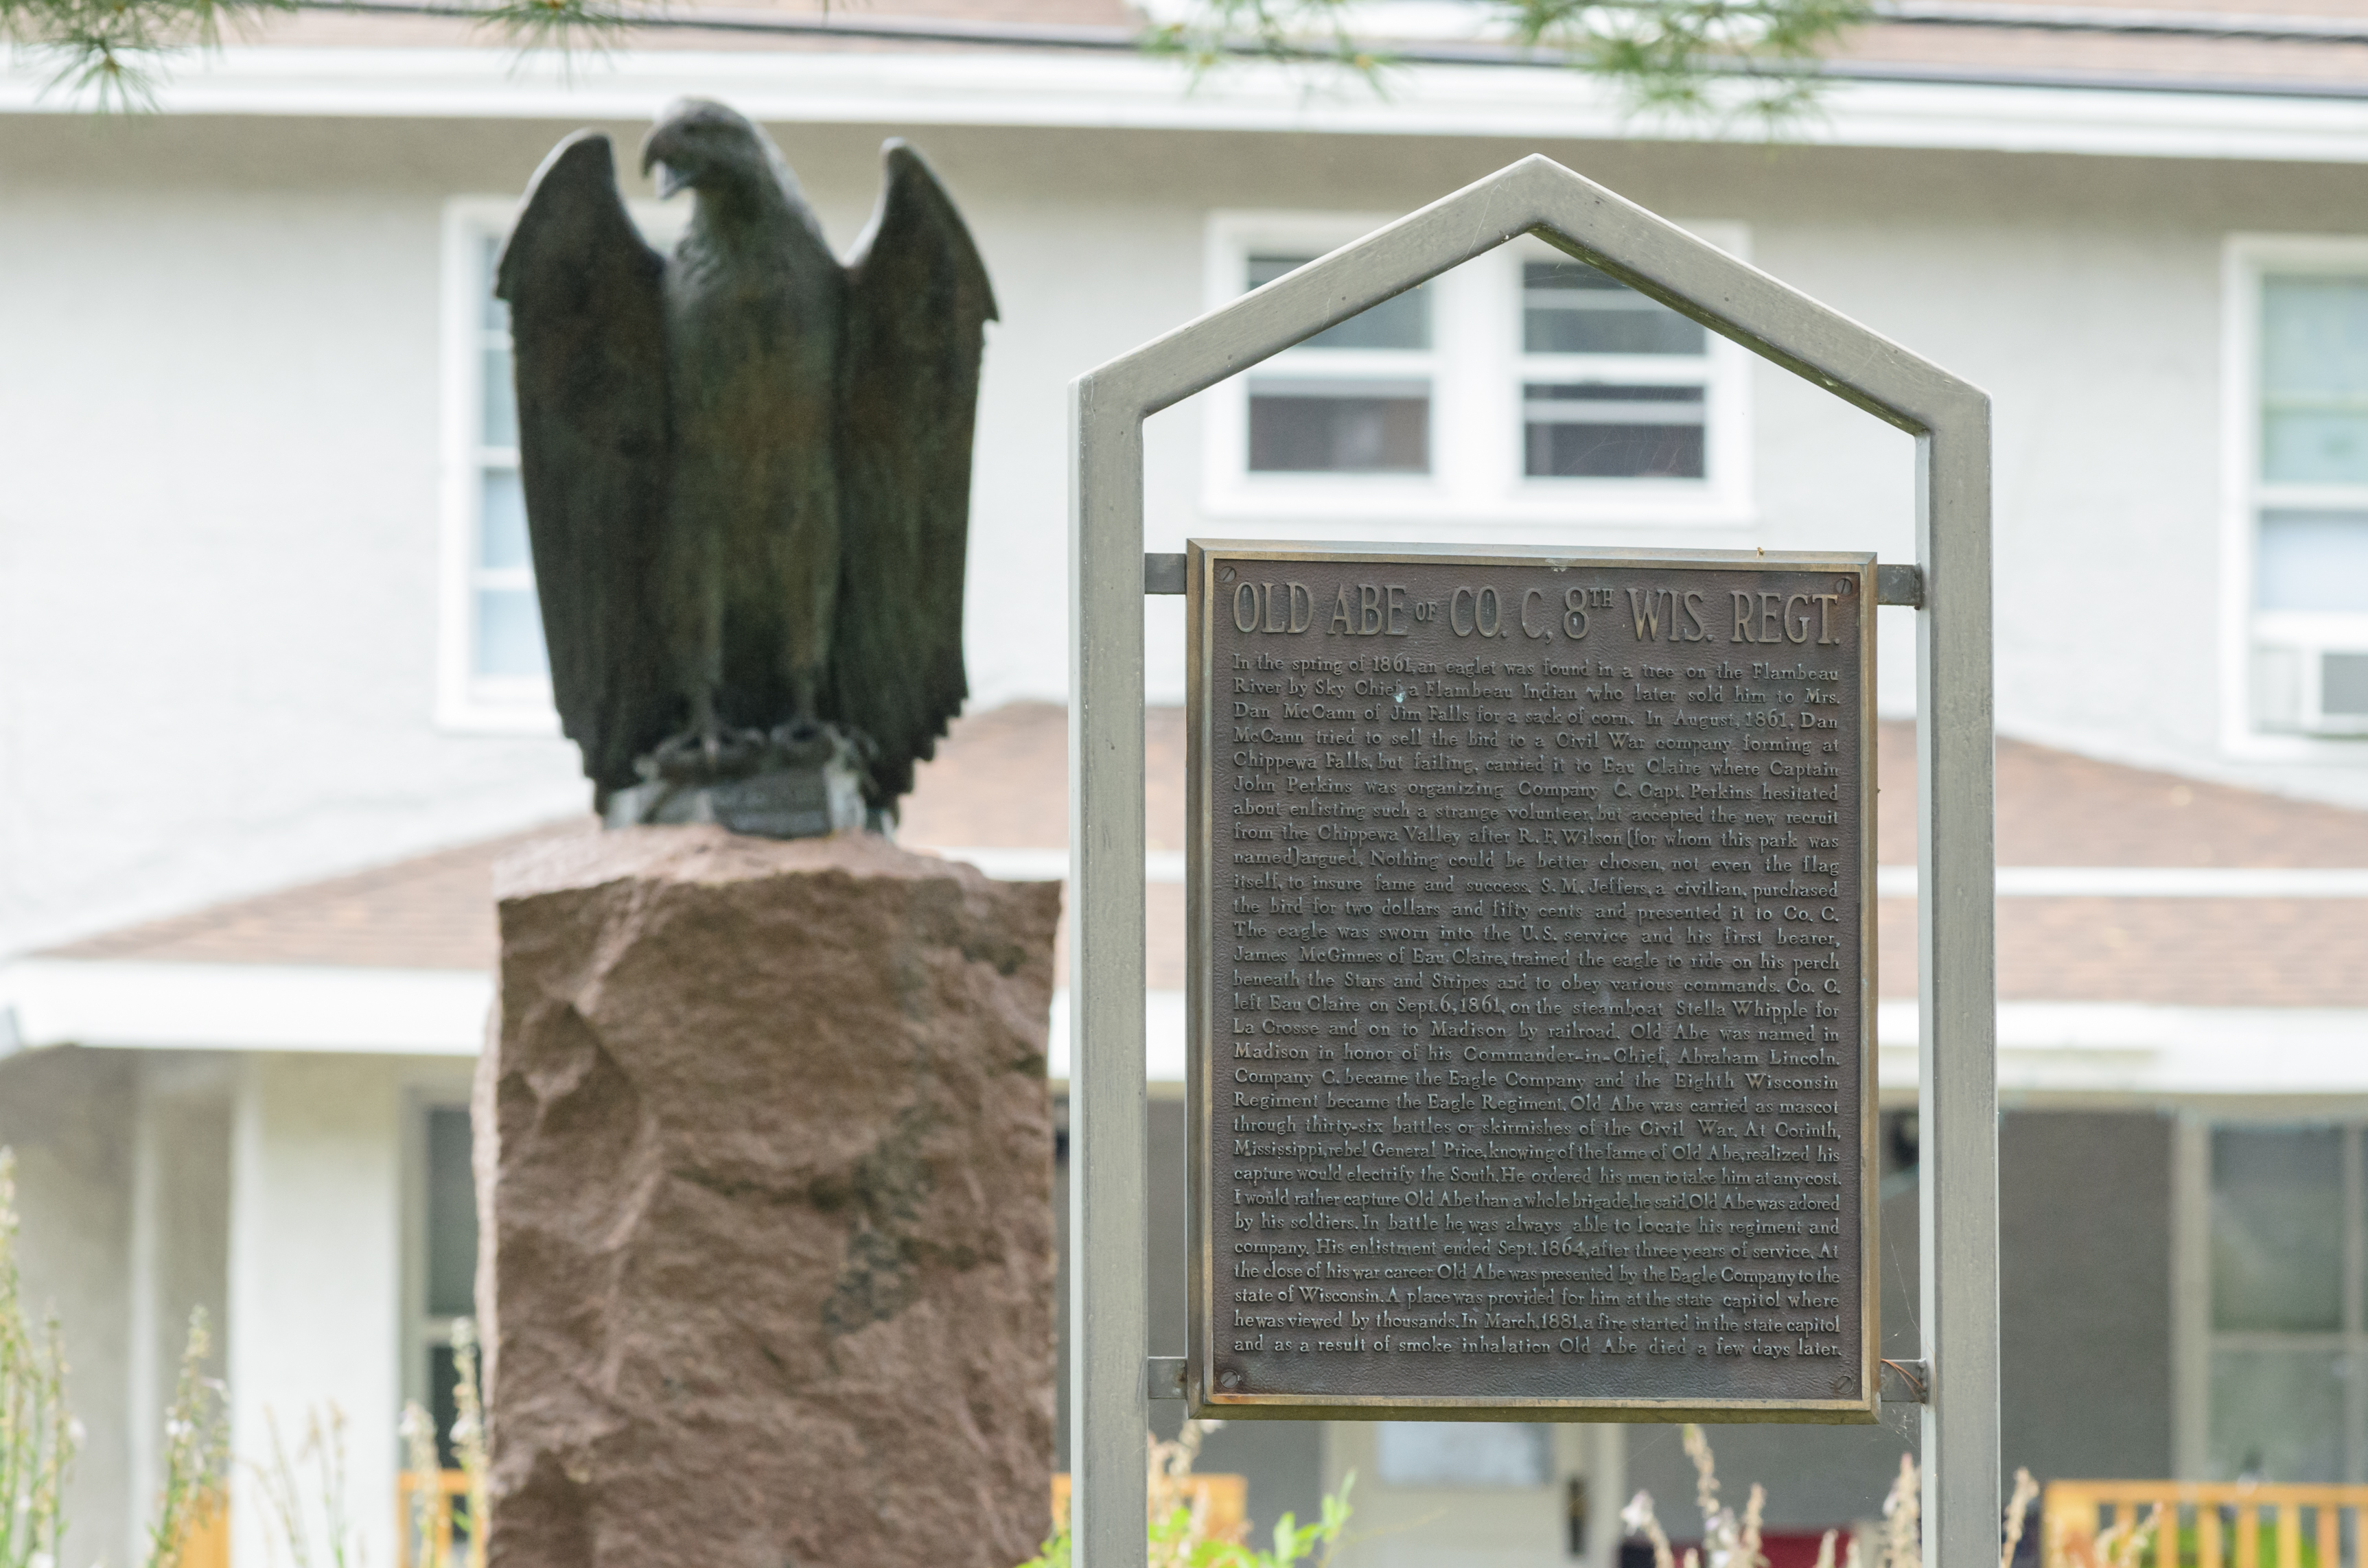 A statue of Old Abe and a historic marker about the eagle stand in downtown Eau Claire's Wilson Park. Photo by Lee Butterworth/Volume One